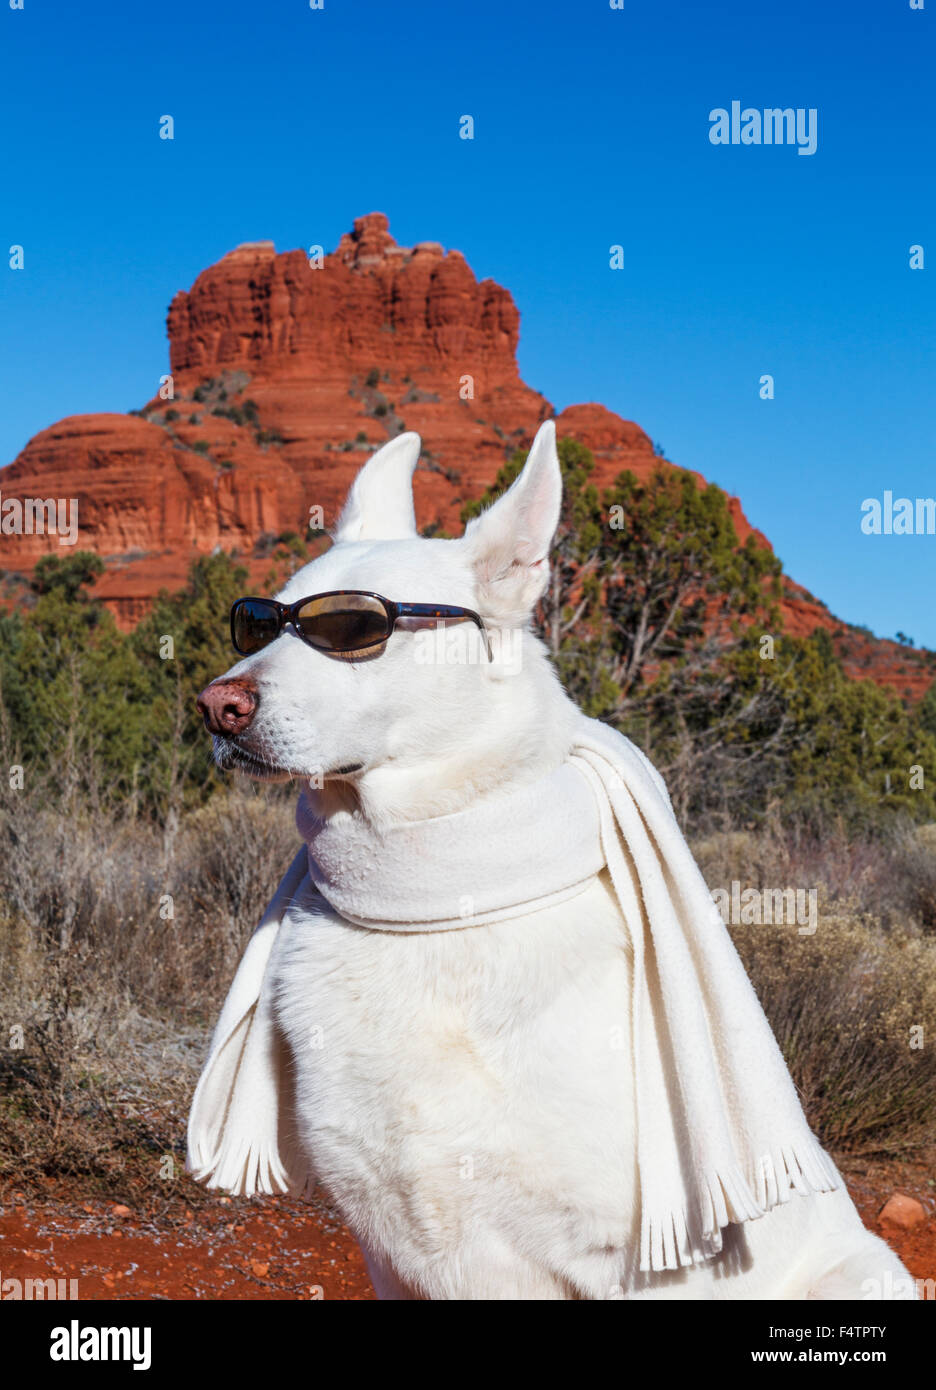 White German Shepherd wearing sunglasses and scarf, with Bell Rock in the distance - Stock Image